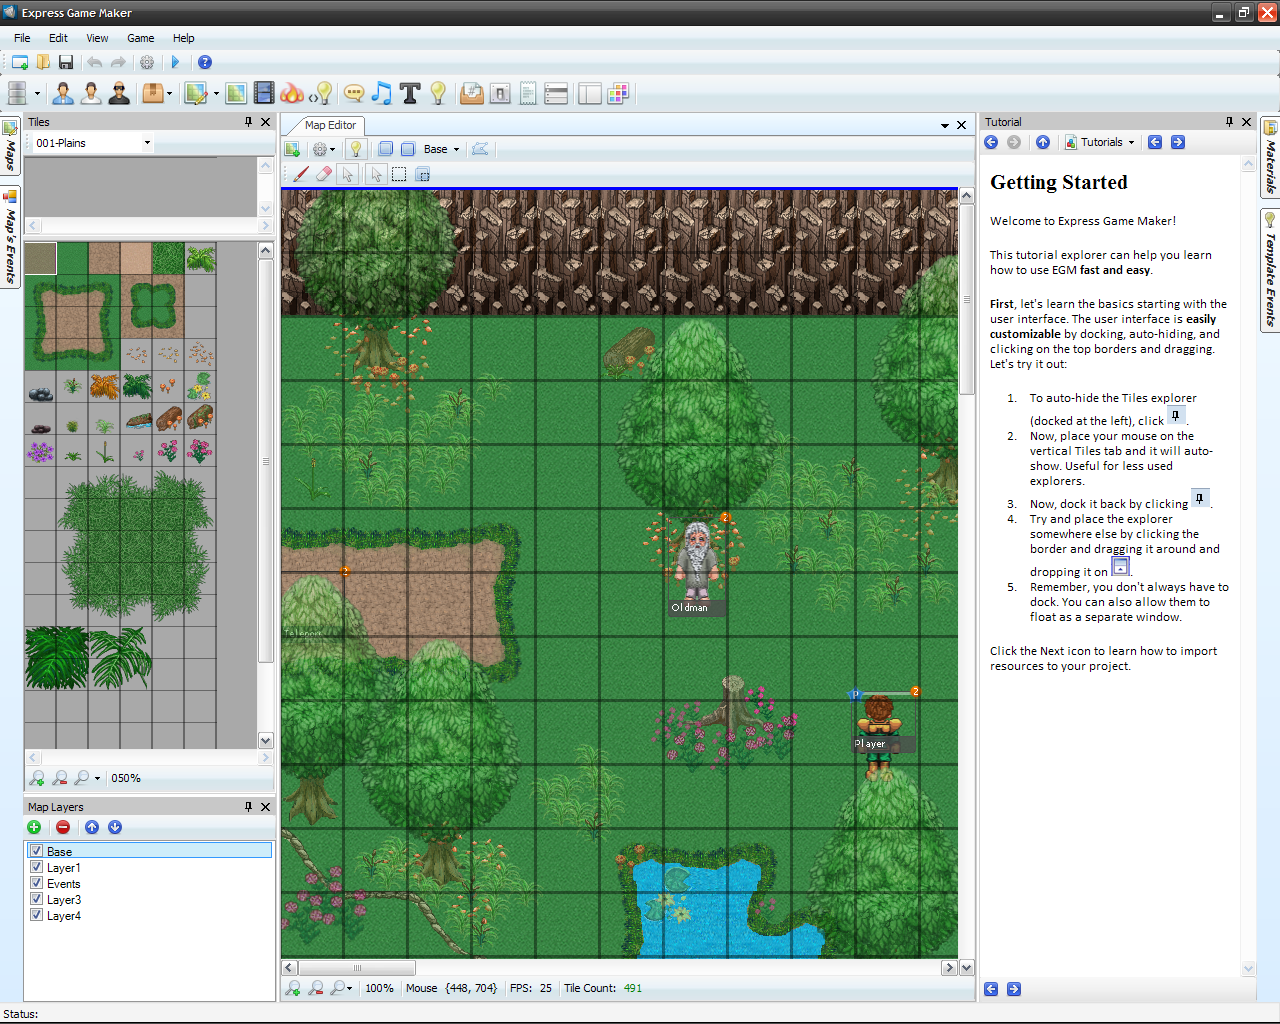 Wanted open source project express game maker seeking for c rpg hero editor rpg gumiabroncs Images